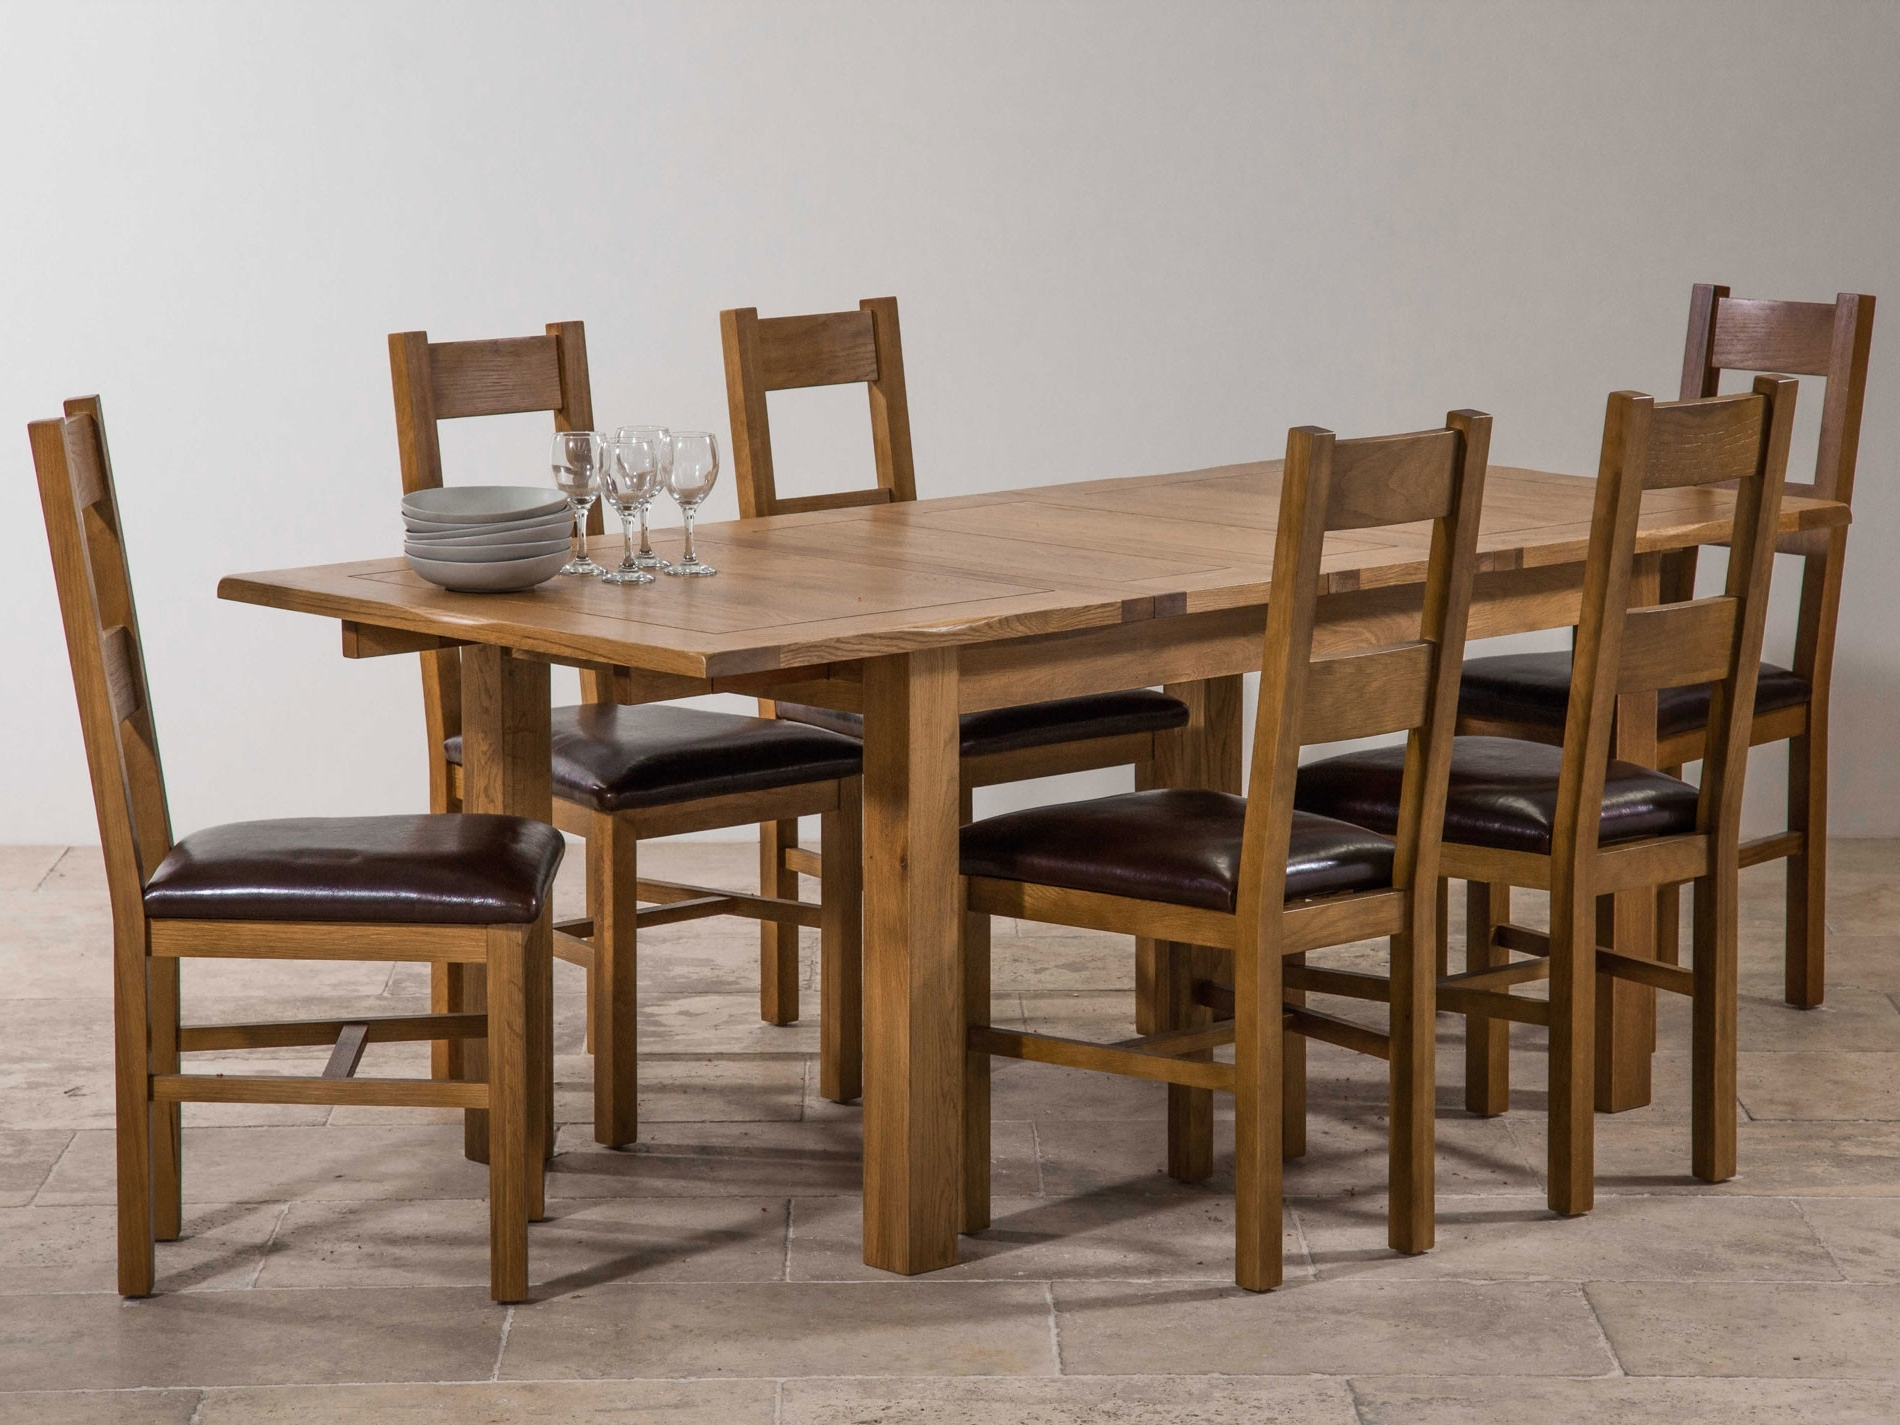 Enchanting Extendable Dining Table 3Ft Dining Table Sets On White For Most Popular Extendable Dining Tables Sets (Gallery 12 of 25)